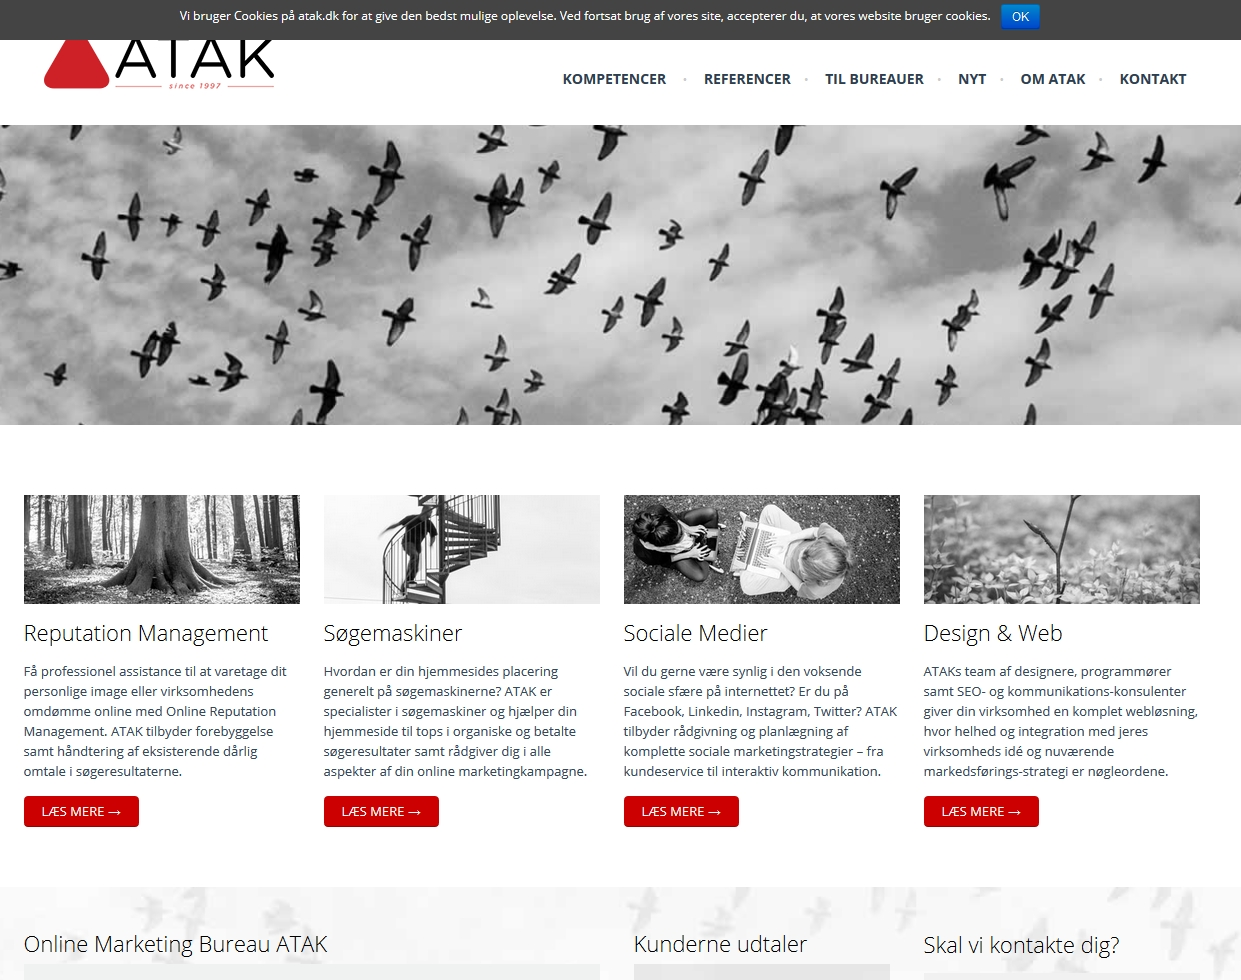 ATAK.dk - Online marketing